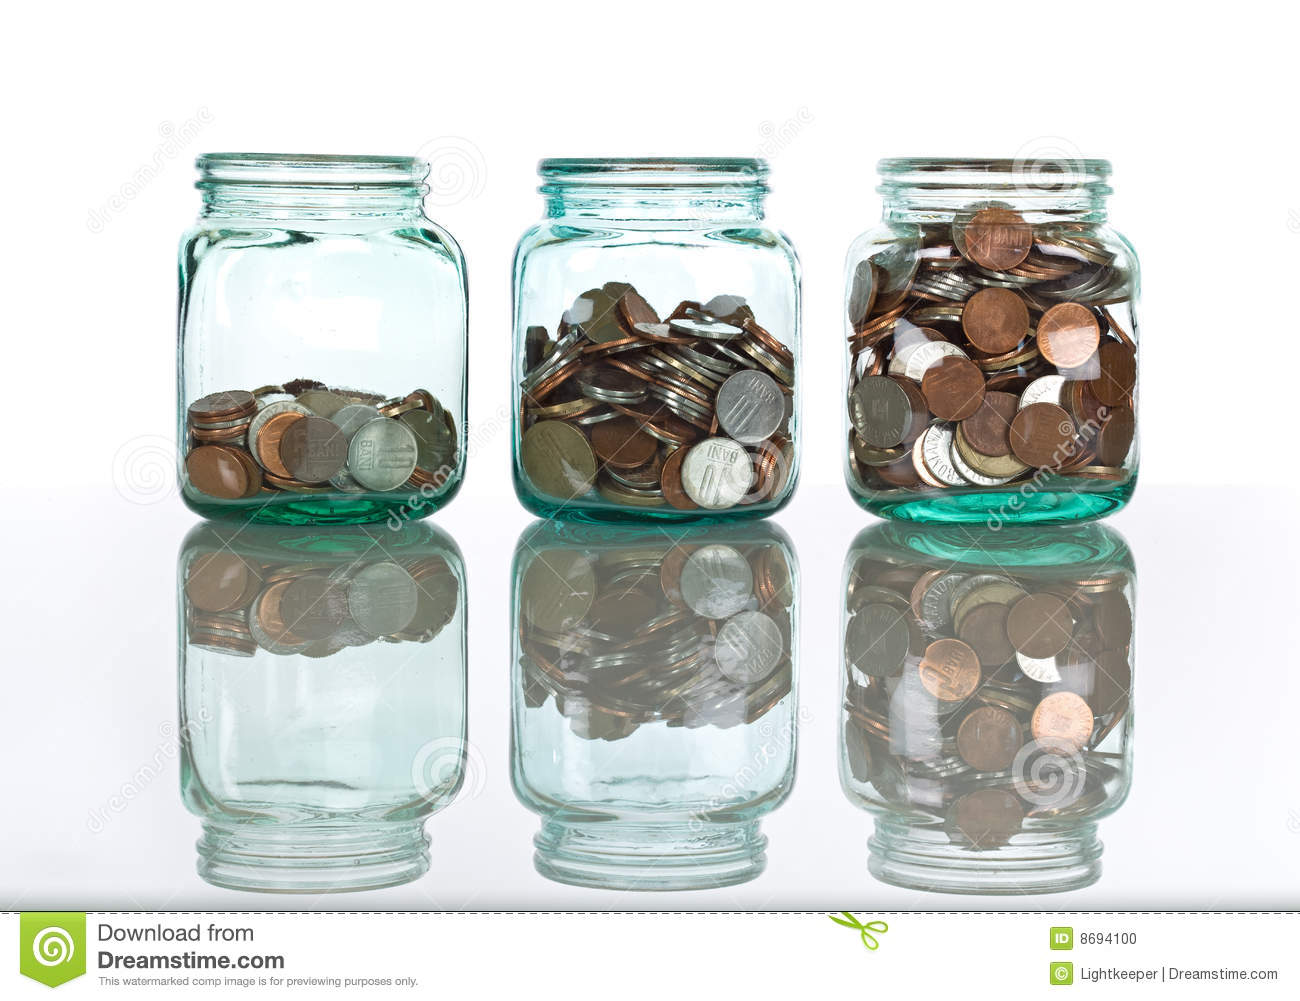 Funny Money Jars - eTreasures Gifts